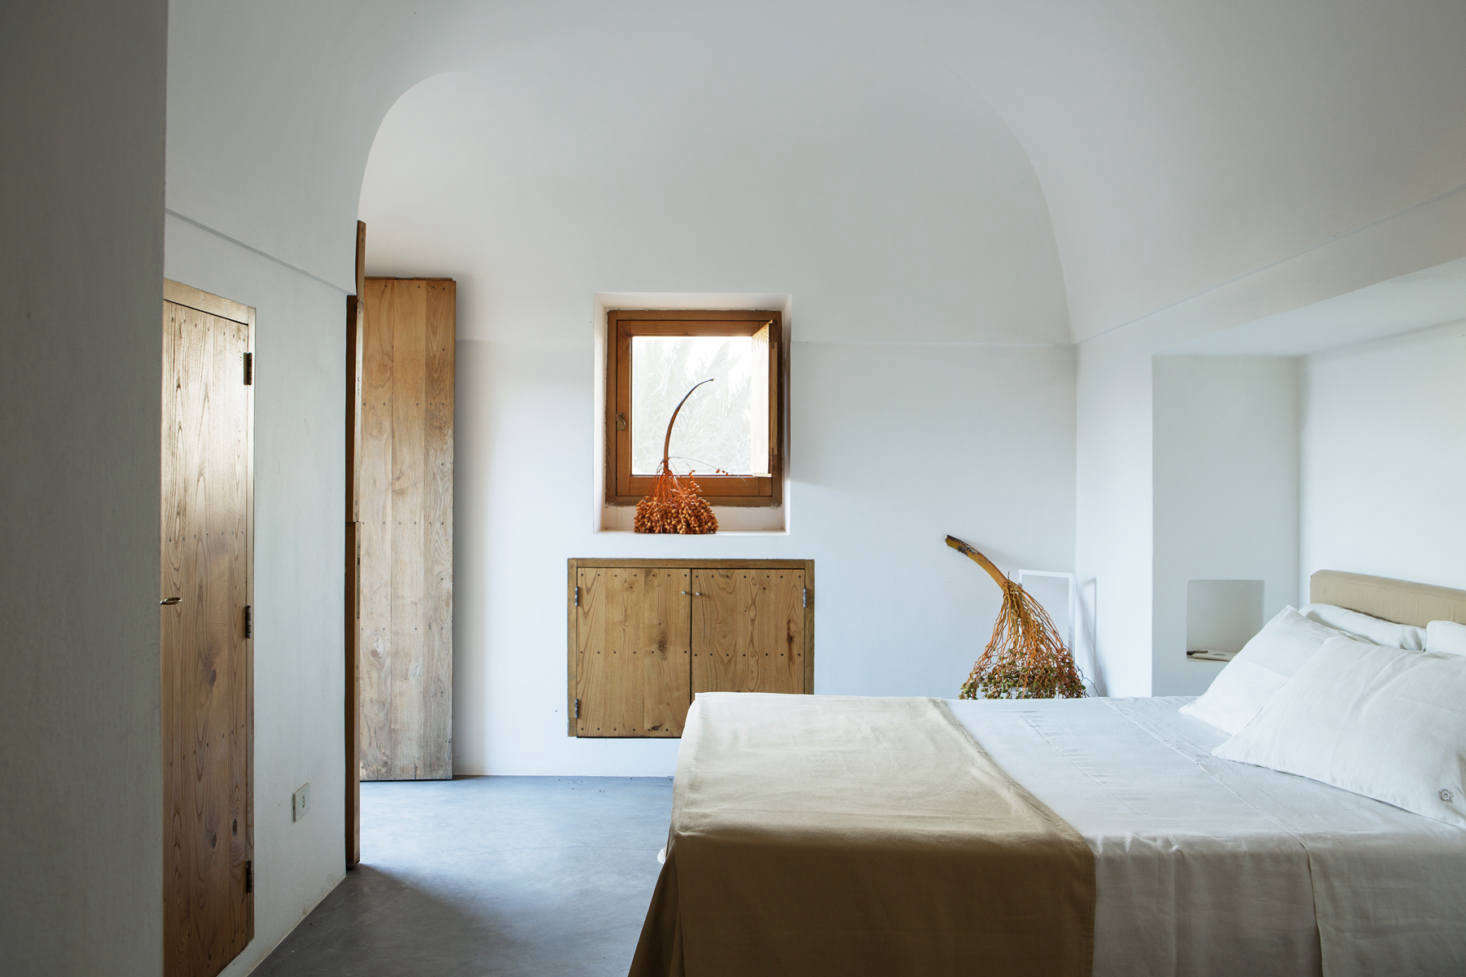 The quintessence of simplicity in the bedroom.